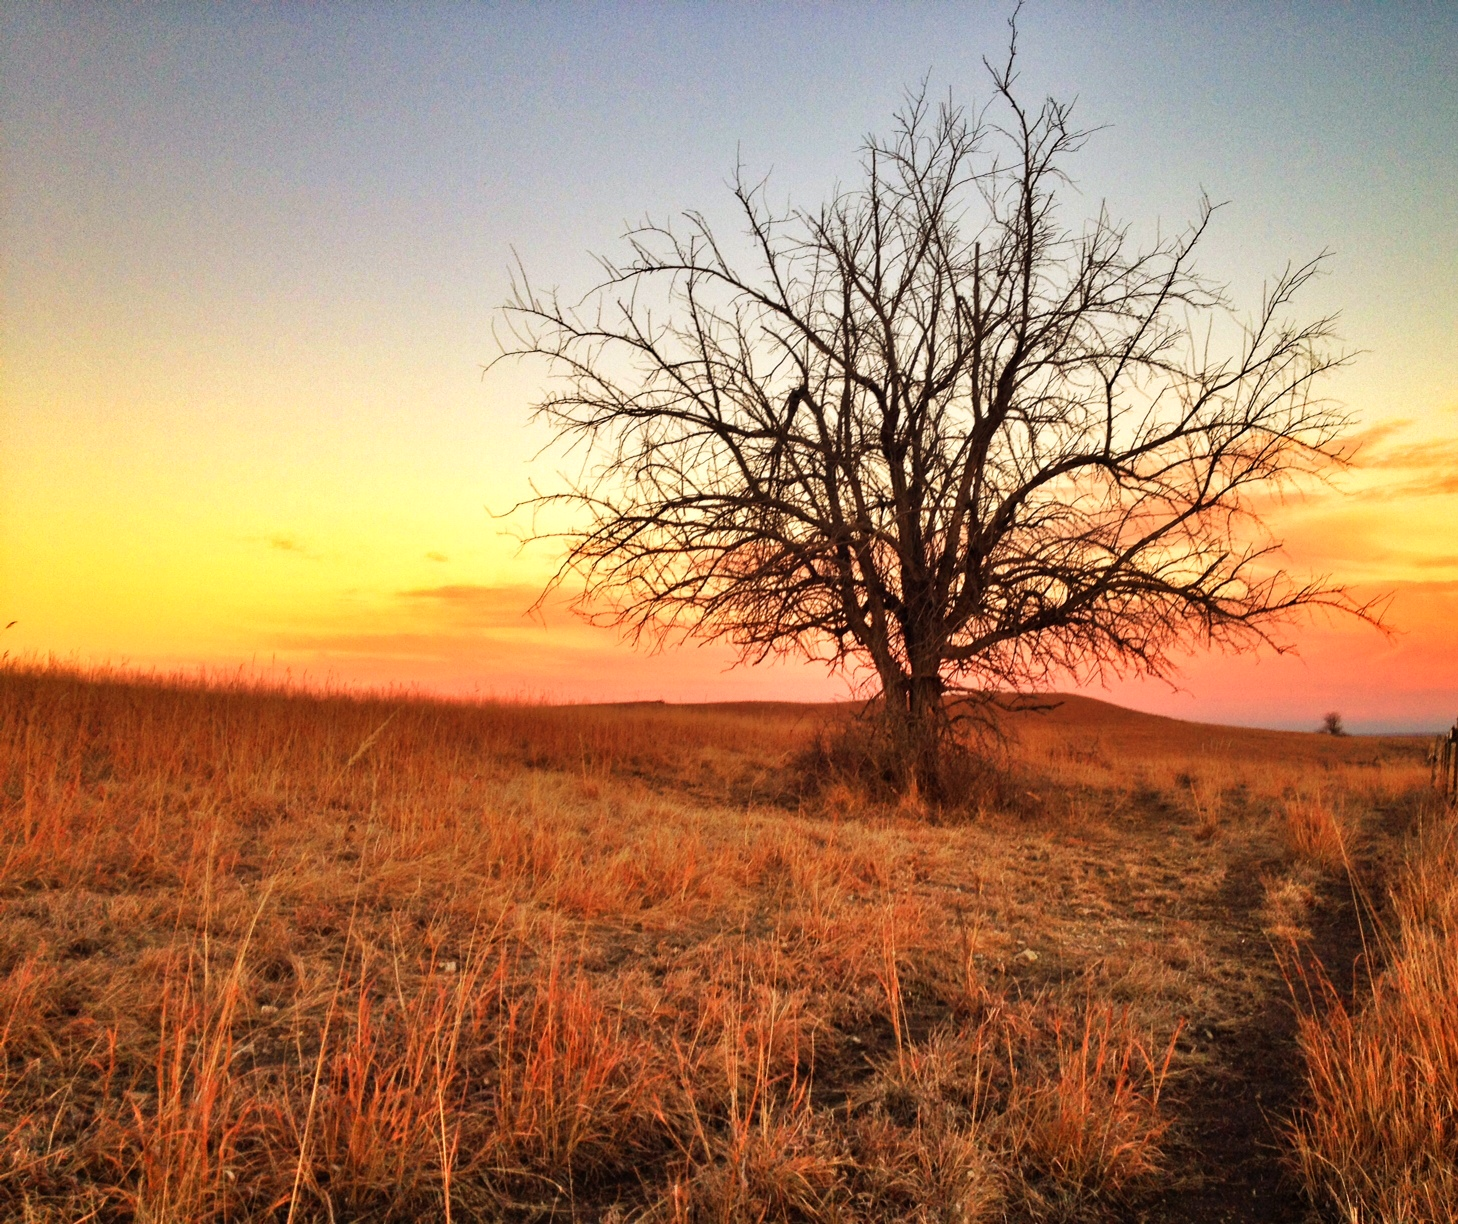 Lonely tree, in the Flint Hills west of Alma, Kansas (Photo by J. Schafer)